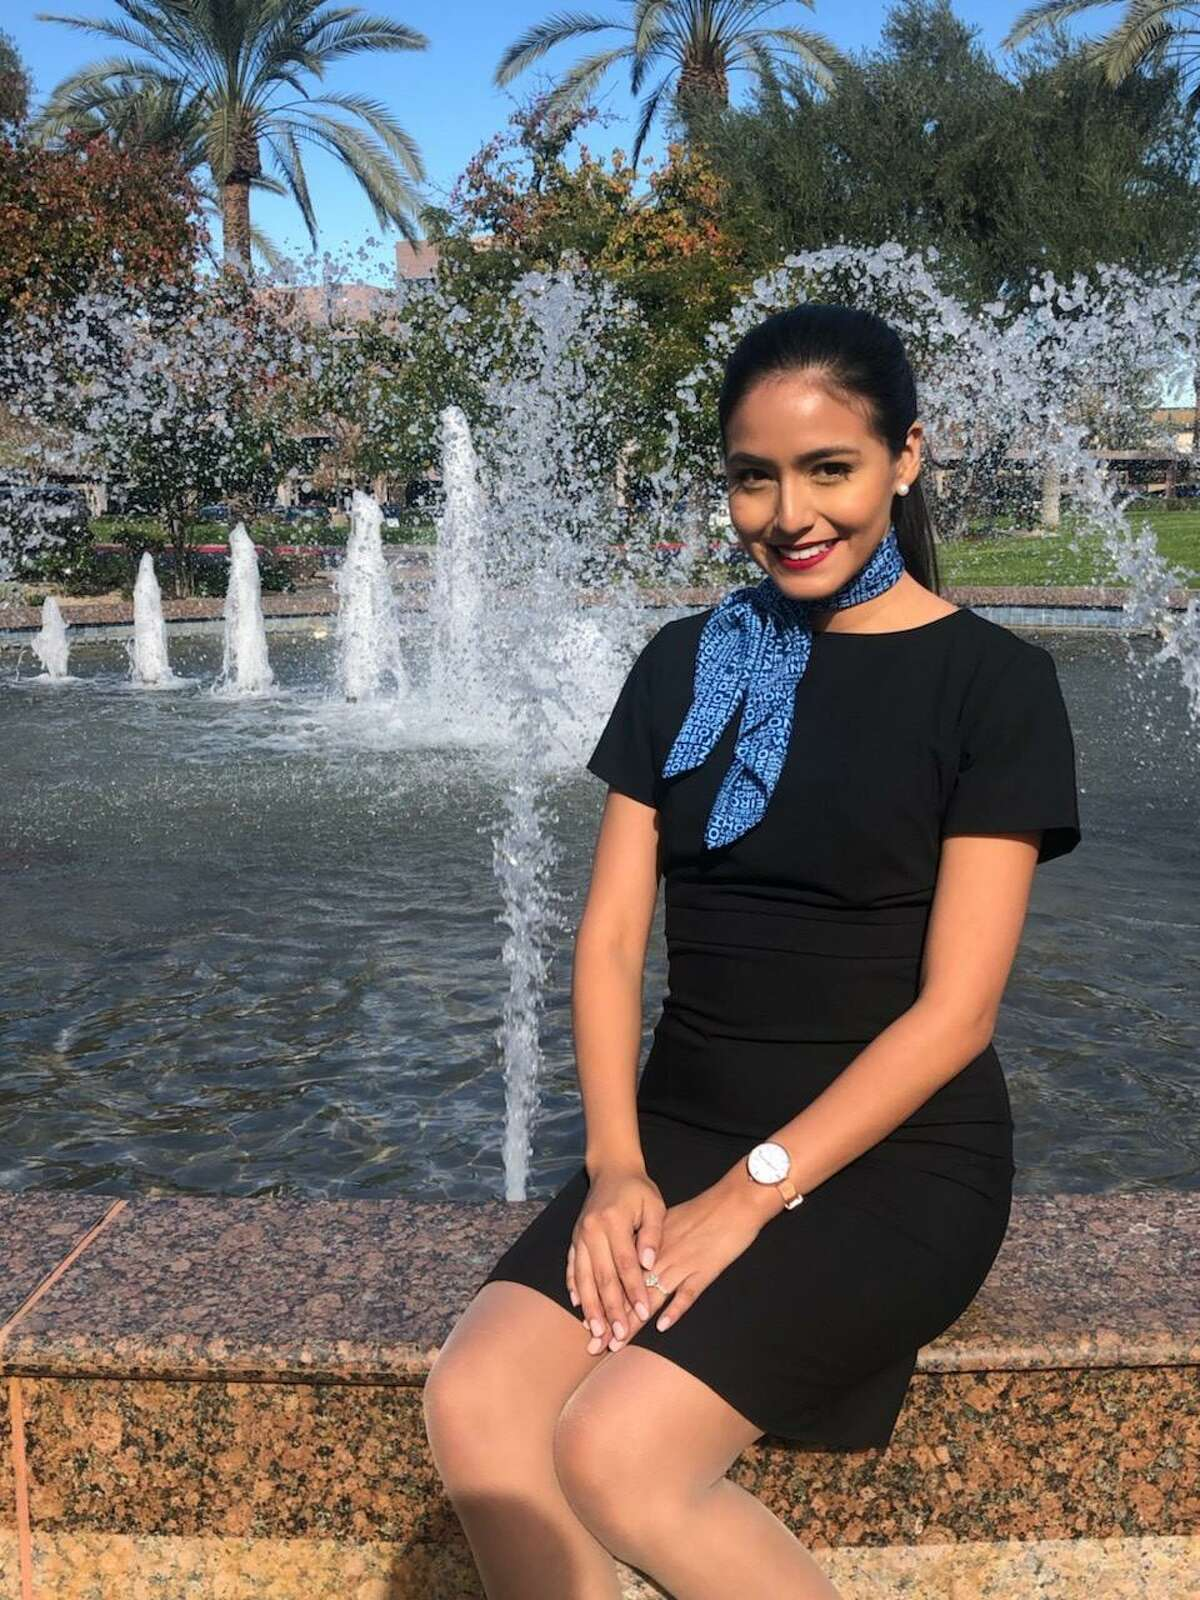 Selene Saavedra, 28, was detained at Houston's George Bush Intercontinental Airport in February 2019 after flying to Mexico with Mesa Airlines. She has a permit for immigrants who came to the United States illegally as children.